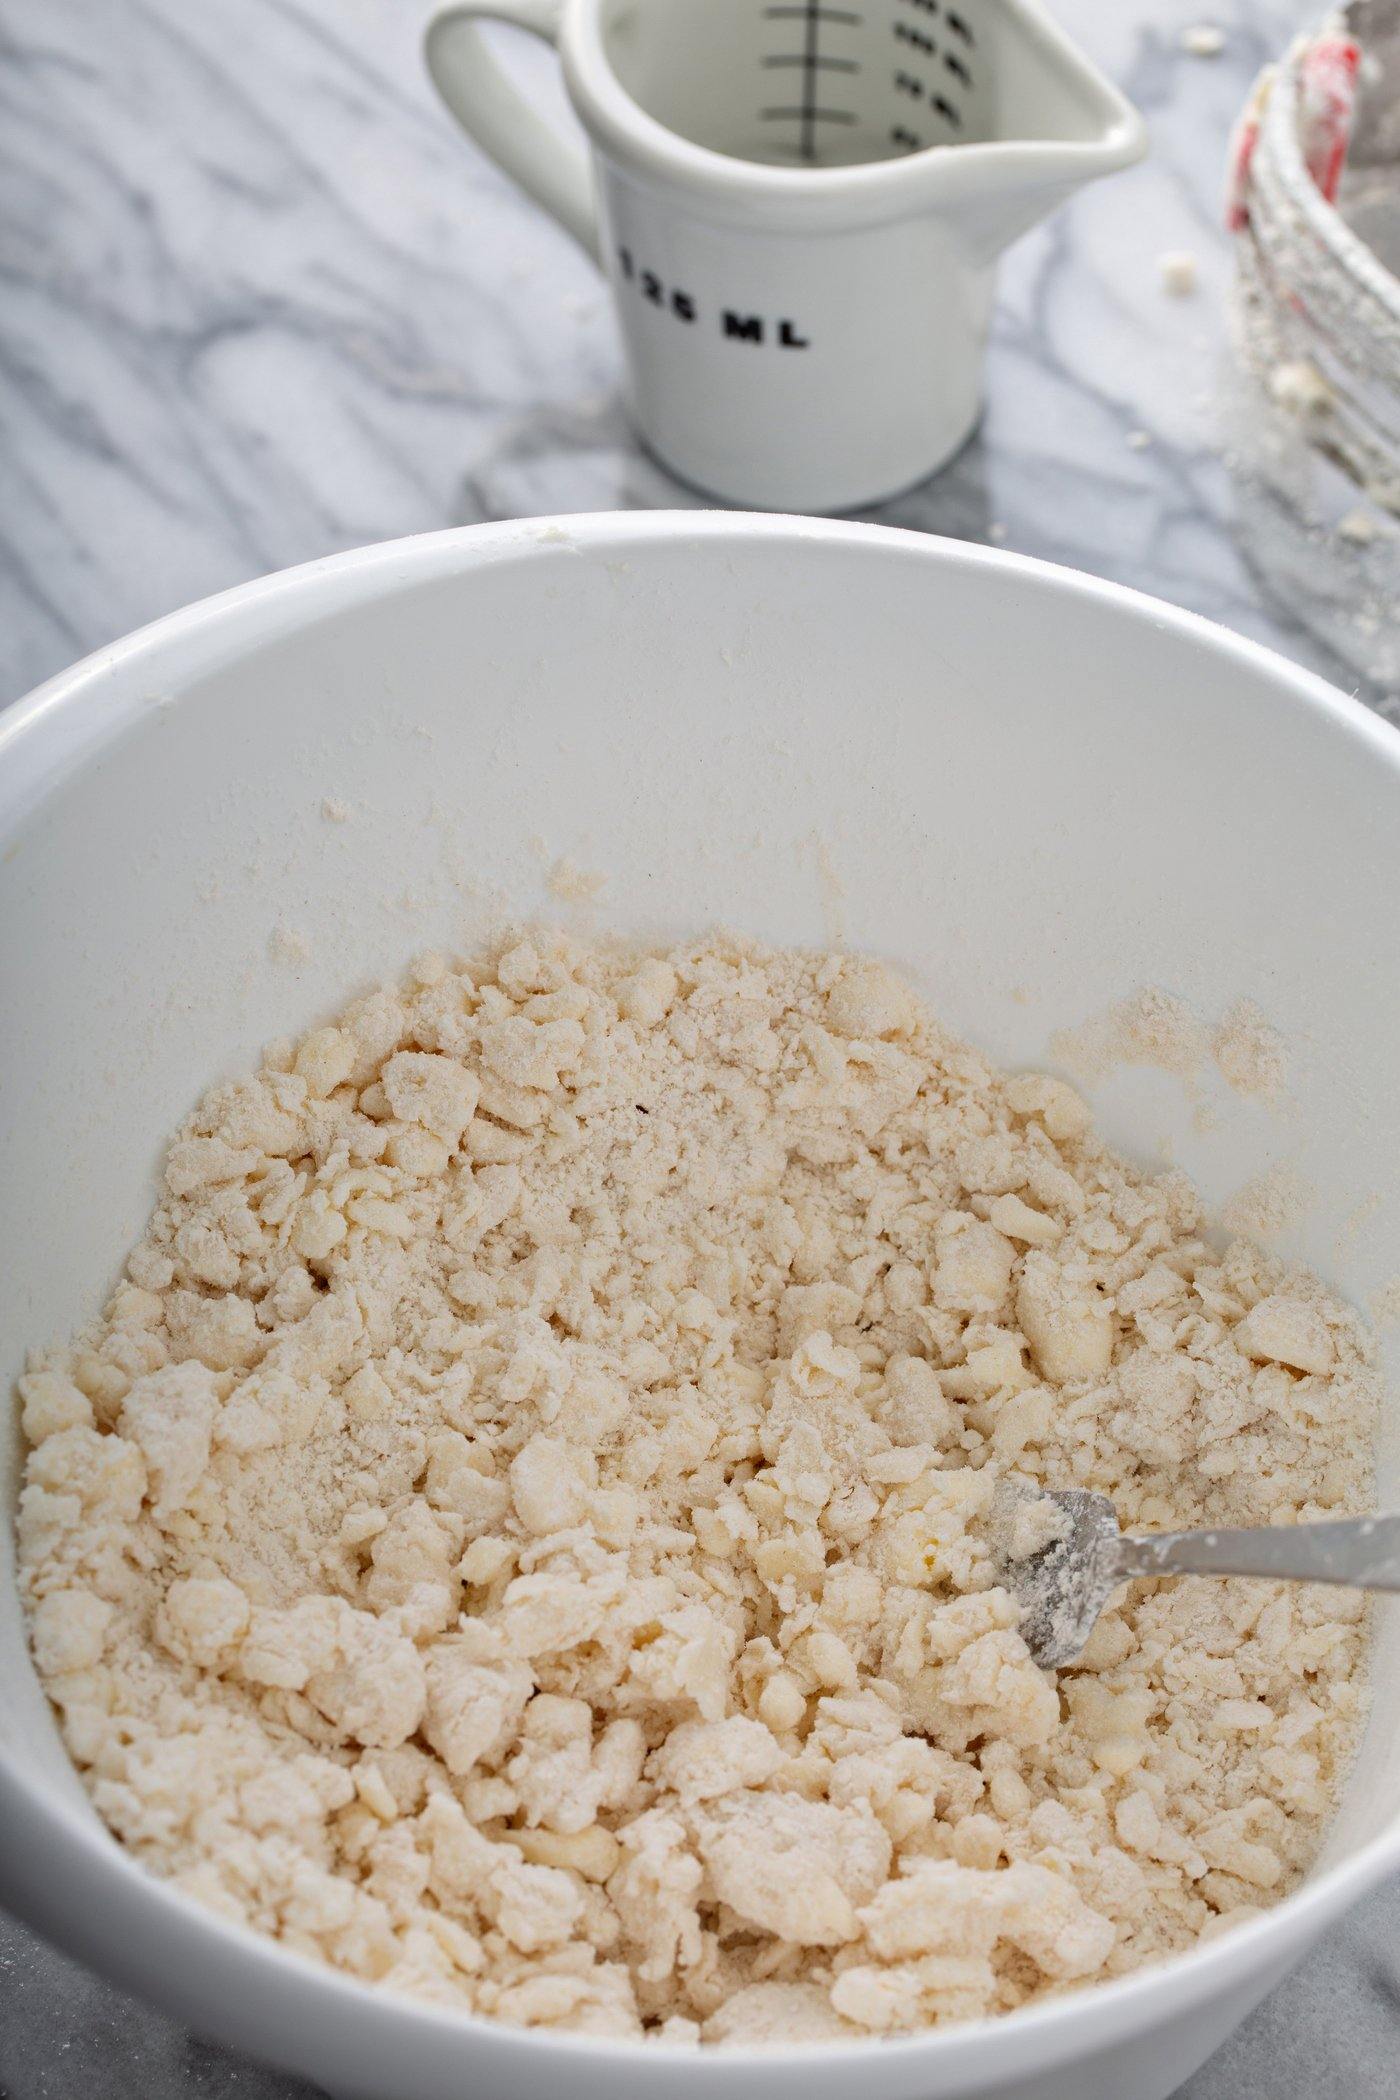 A photo of crumbly pie crust dough in a mixing bowl.